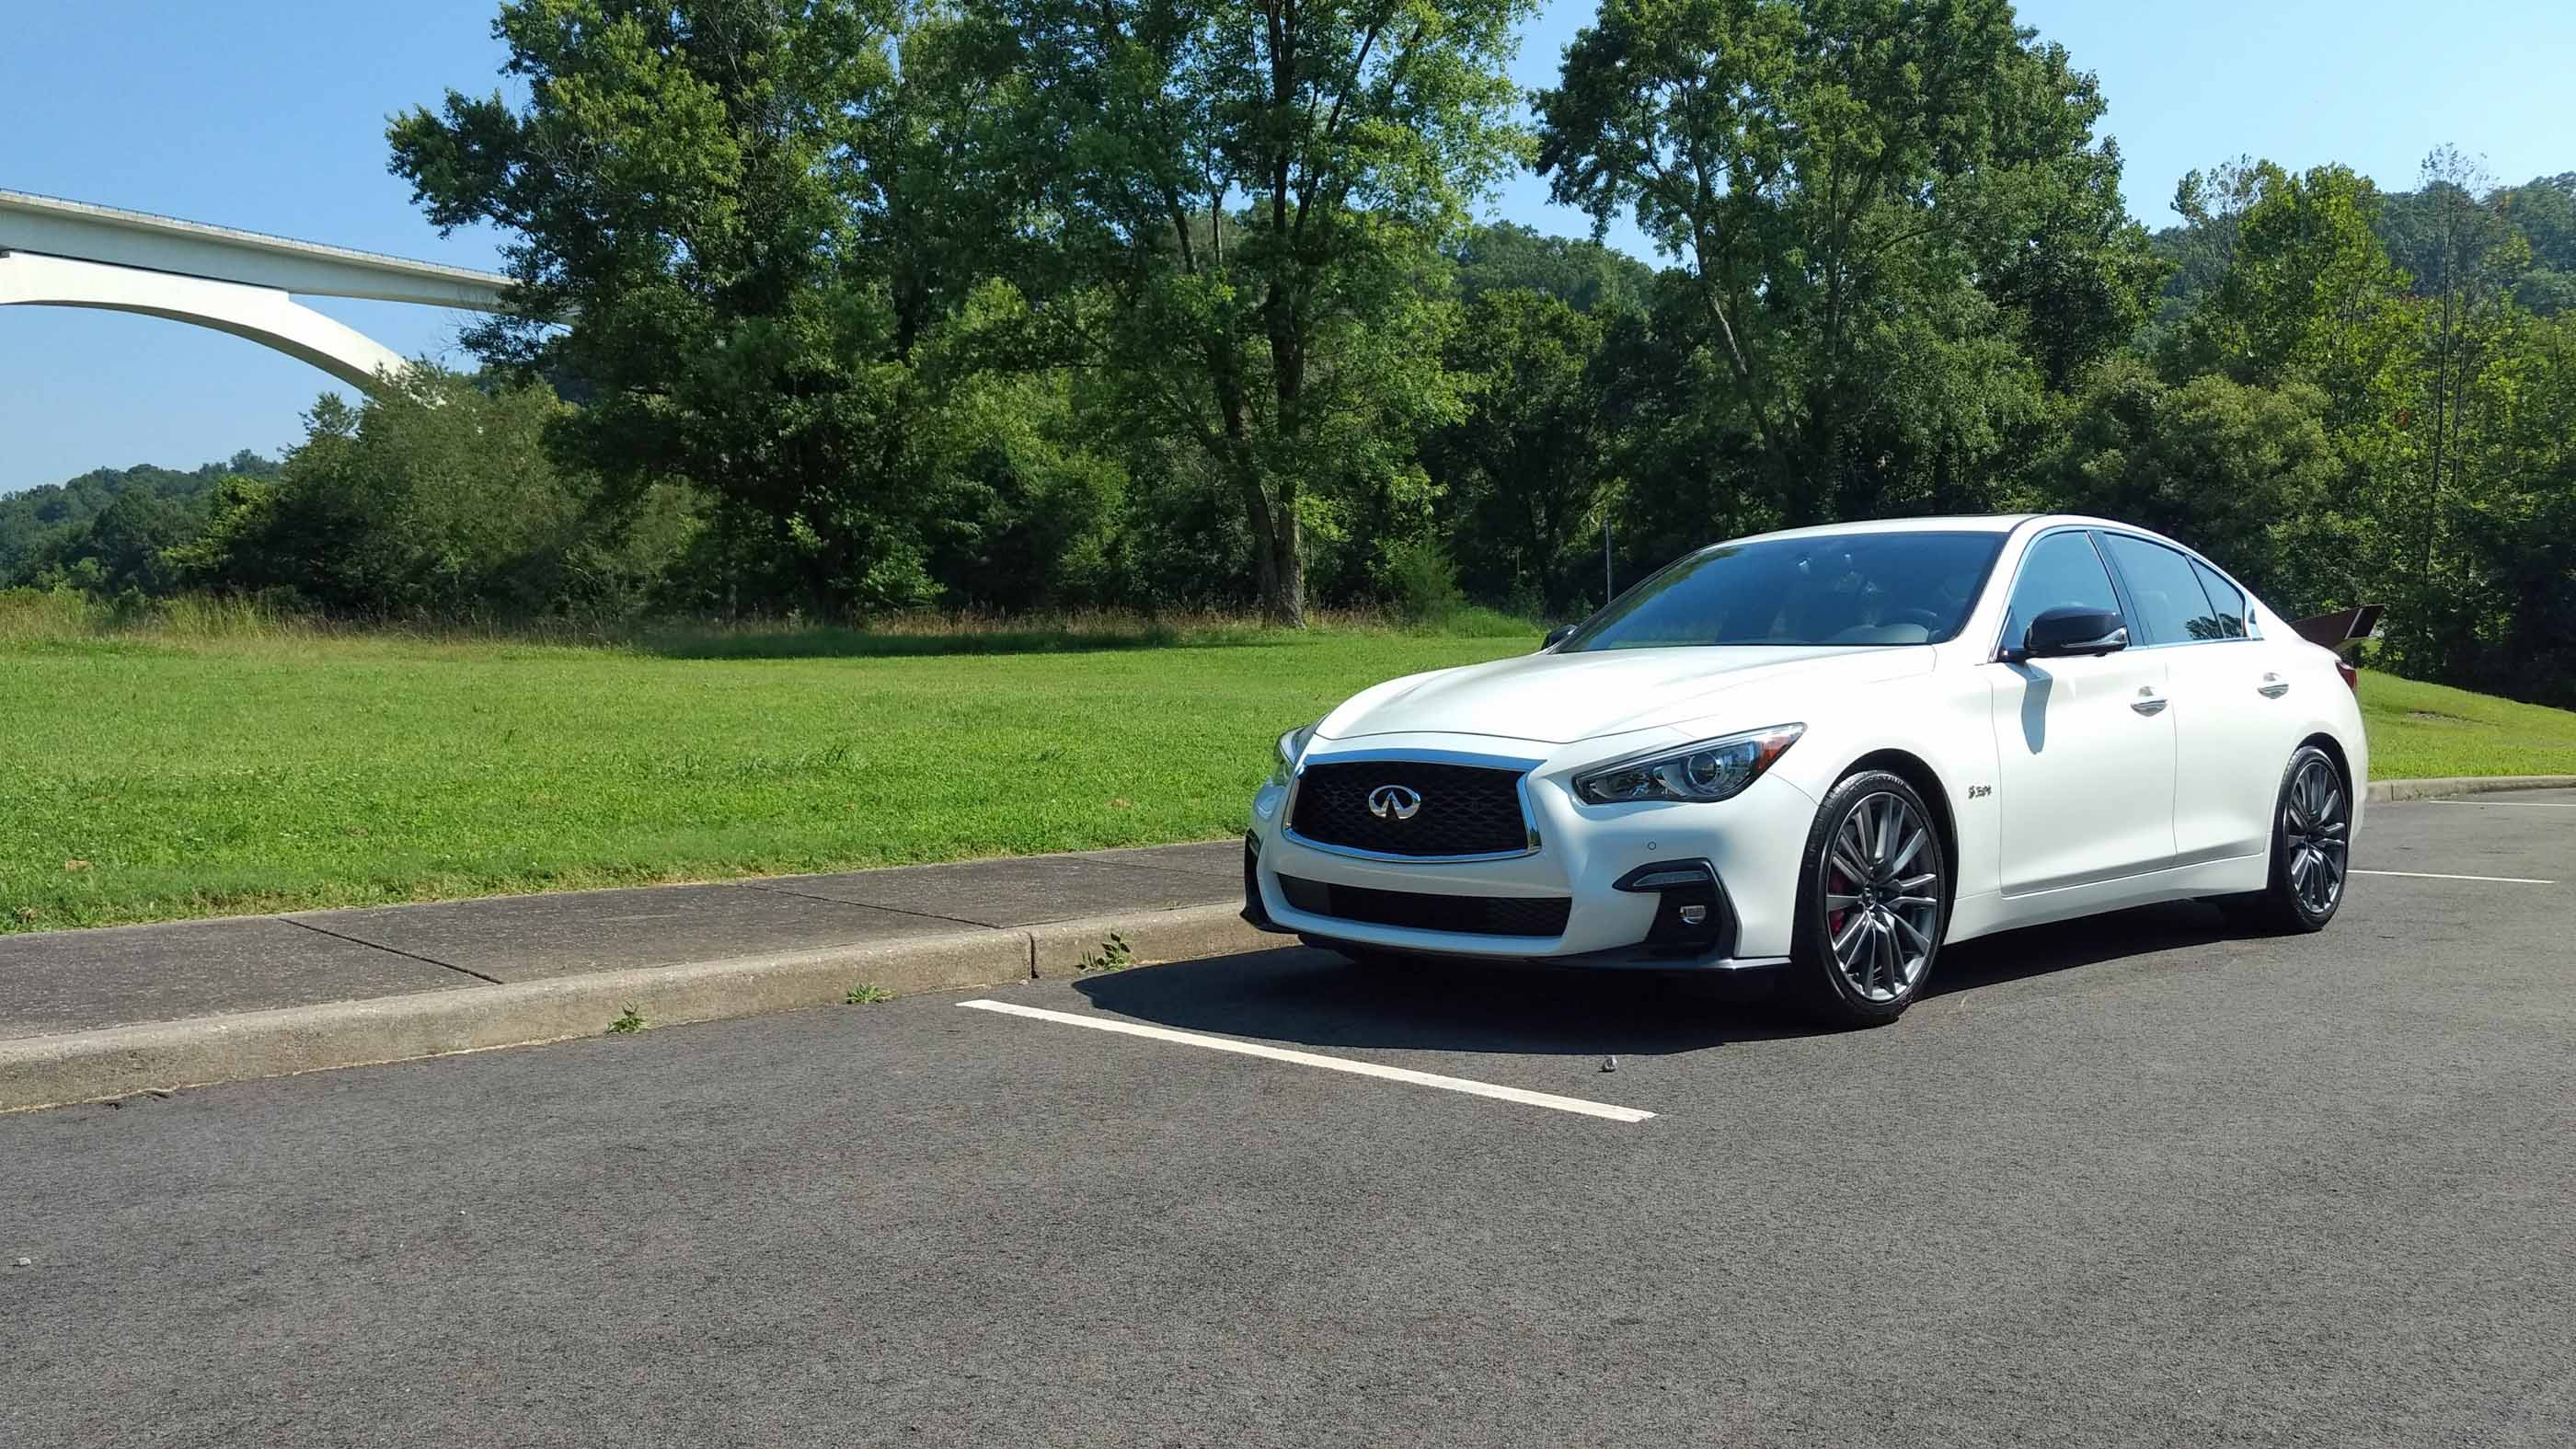 2018 infiniti q50. Perfect Q50 2018InfinitiQ50Review01  Throughout 2018 Infiniti Q50